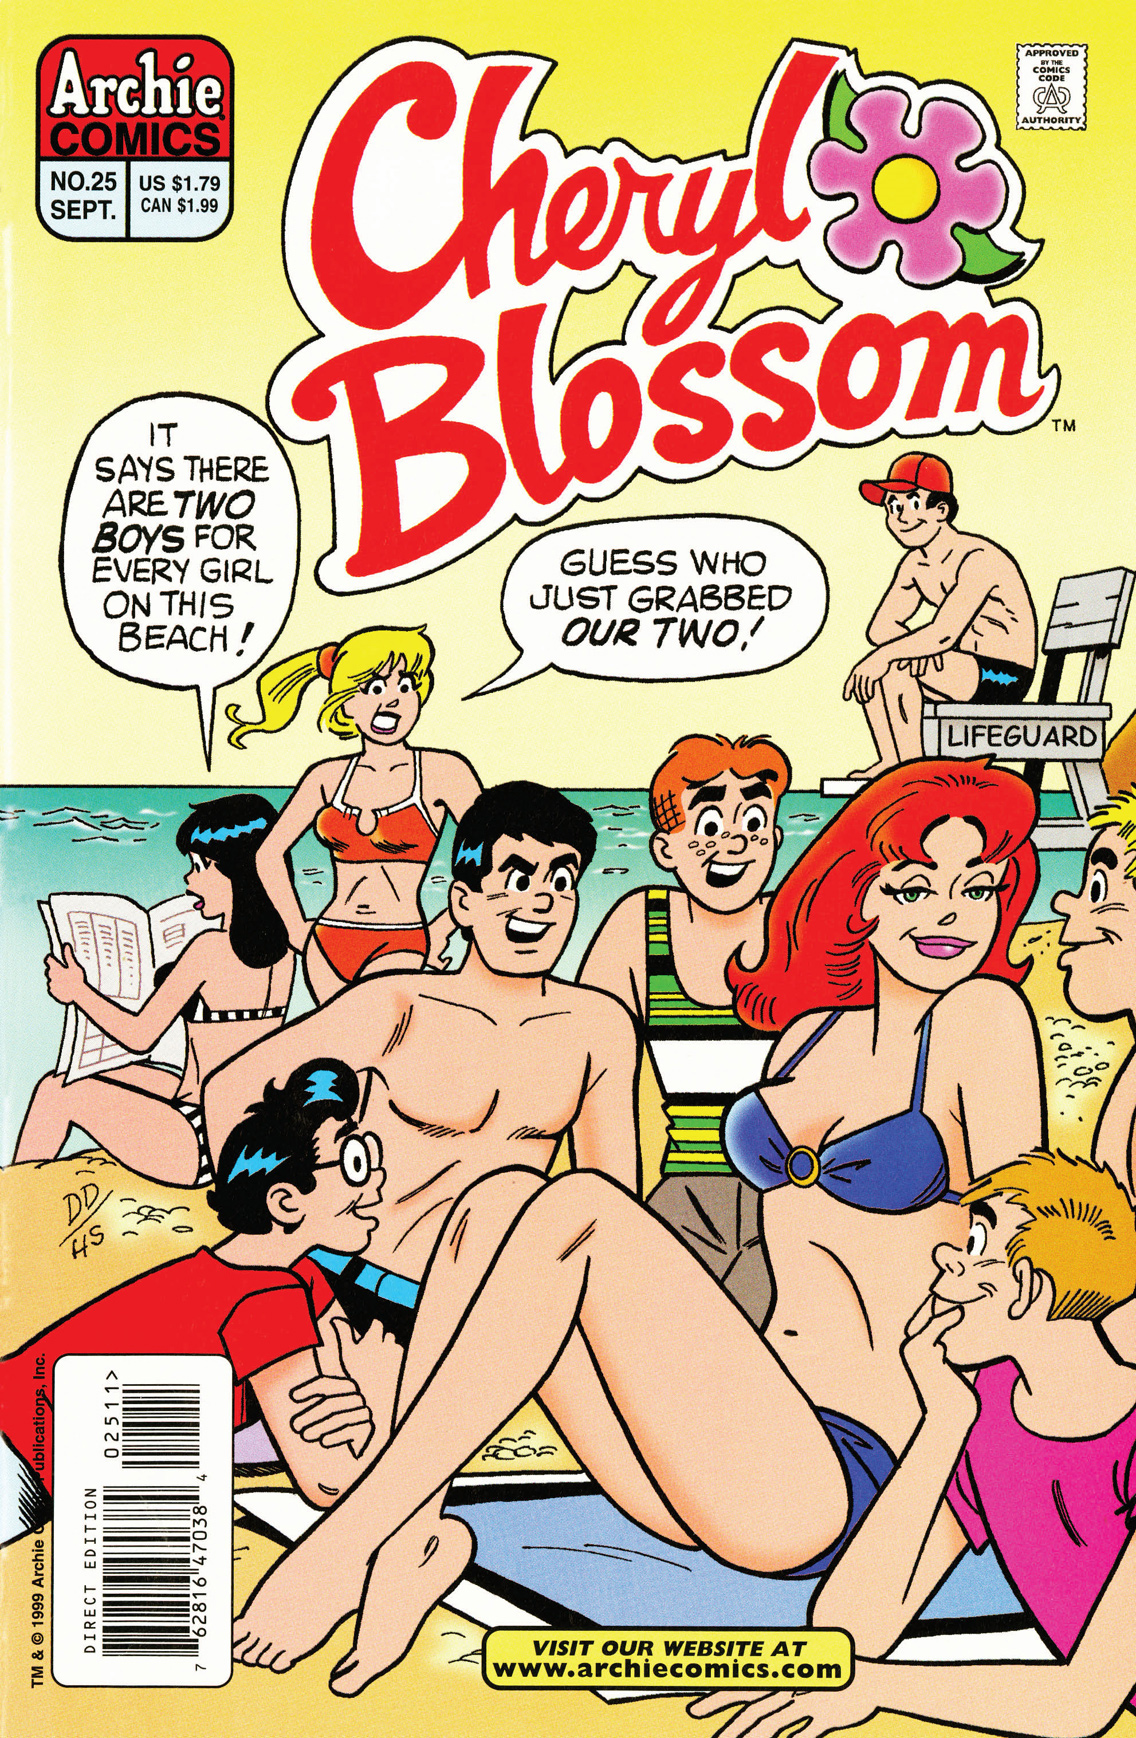 Cheryl Blossom #25 By: Holly G!, John Lowe, Dan DeCarlo, Bill Yoshida, Barry Grossman, Henry Scarpelli